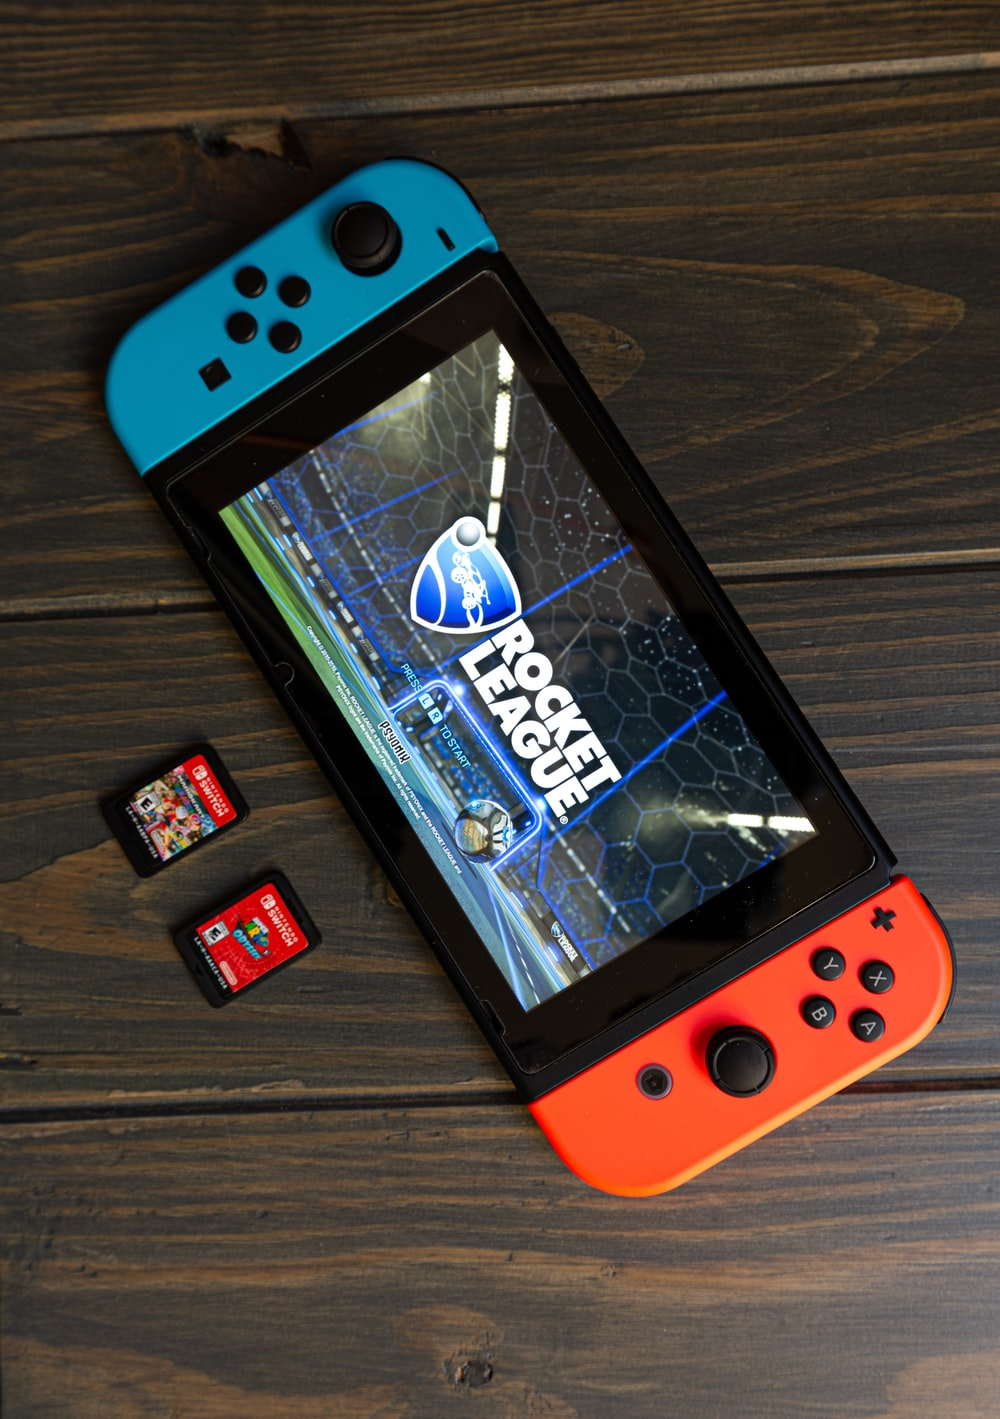 Rocket League game on Nintendo Switch